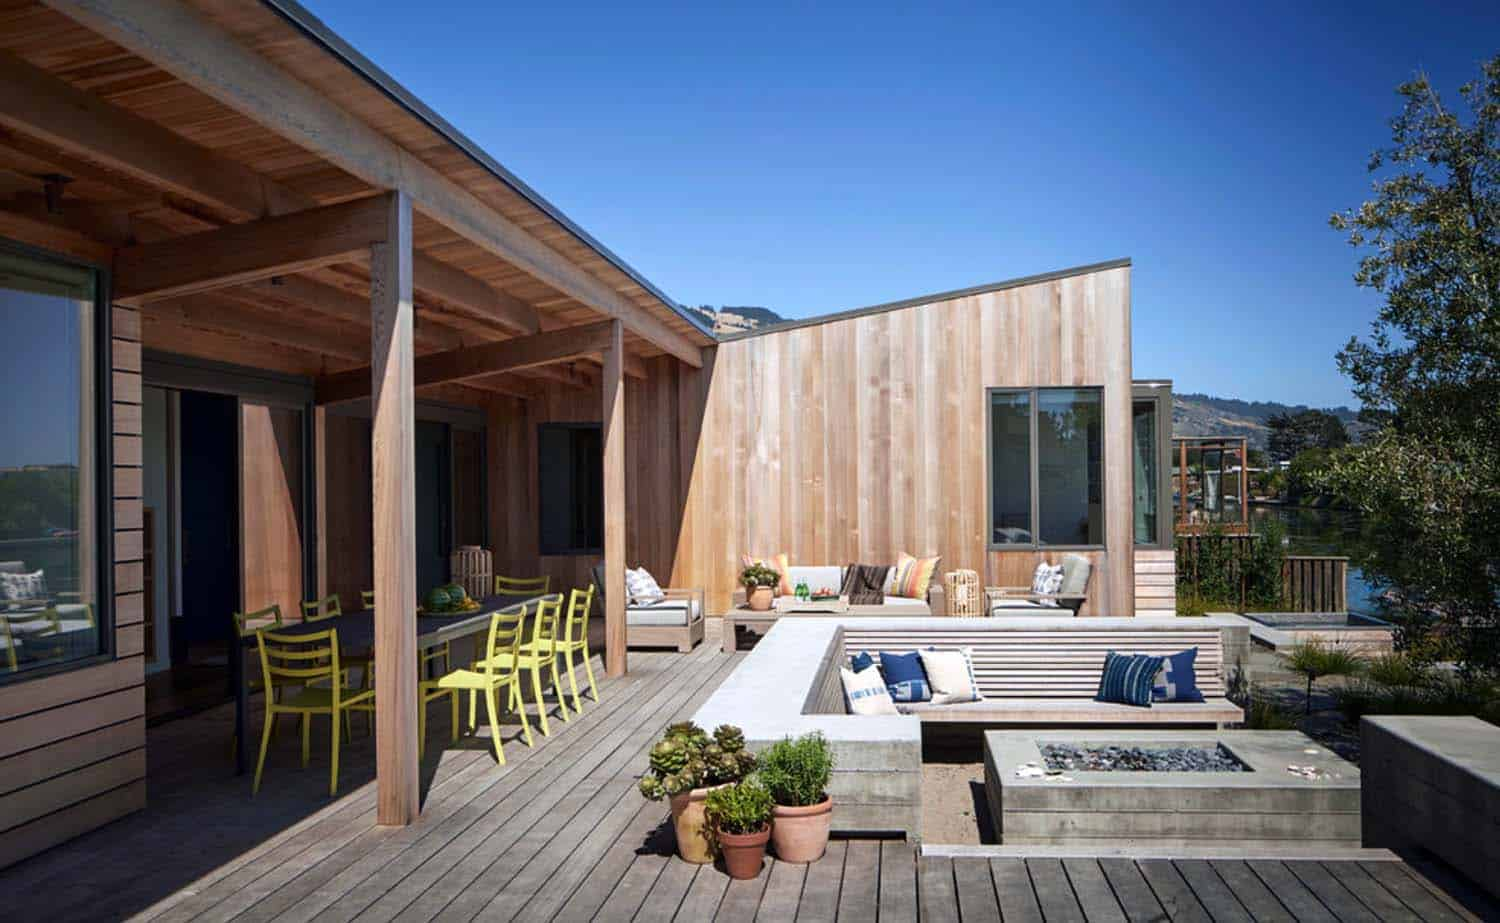 stinson-beach-lagoon-residence-turnbull-griffin-haesloop-05-1-kindesign